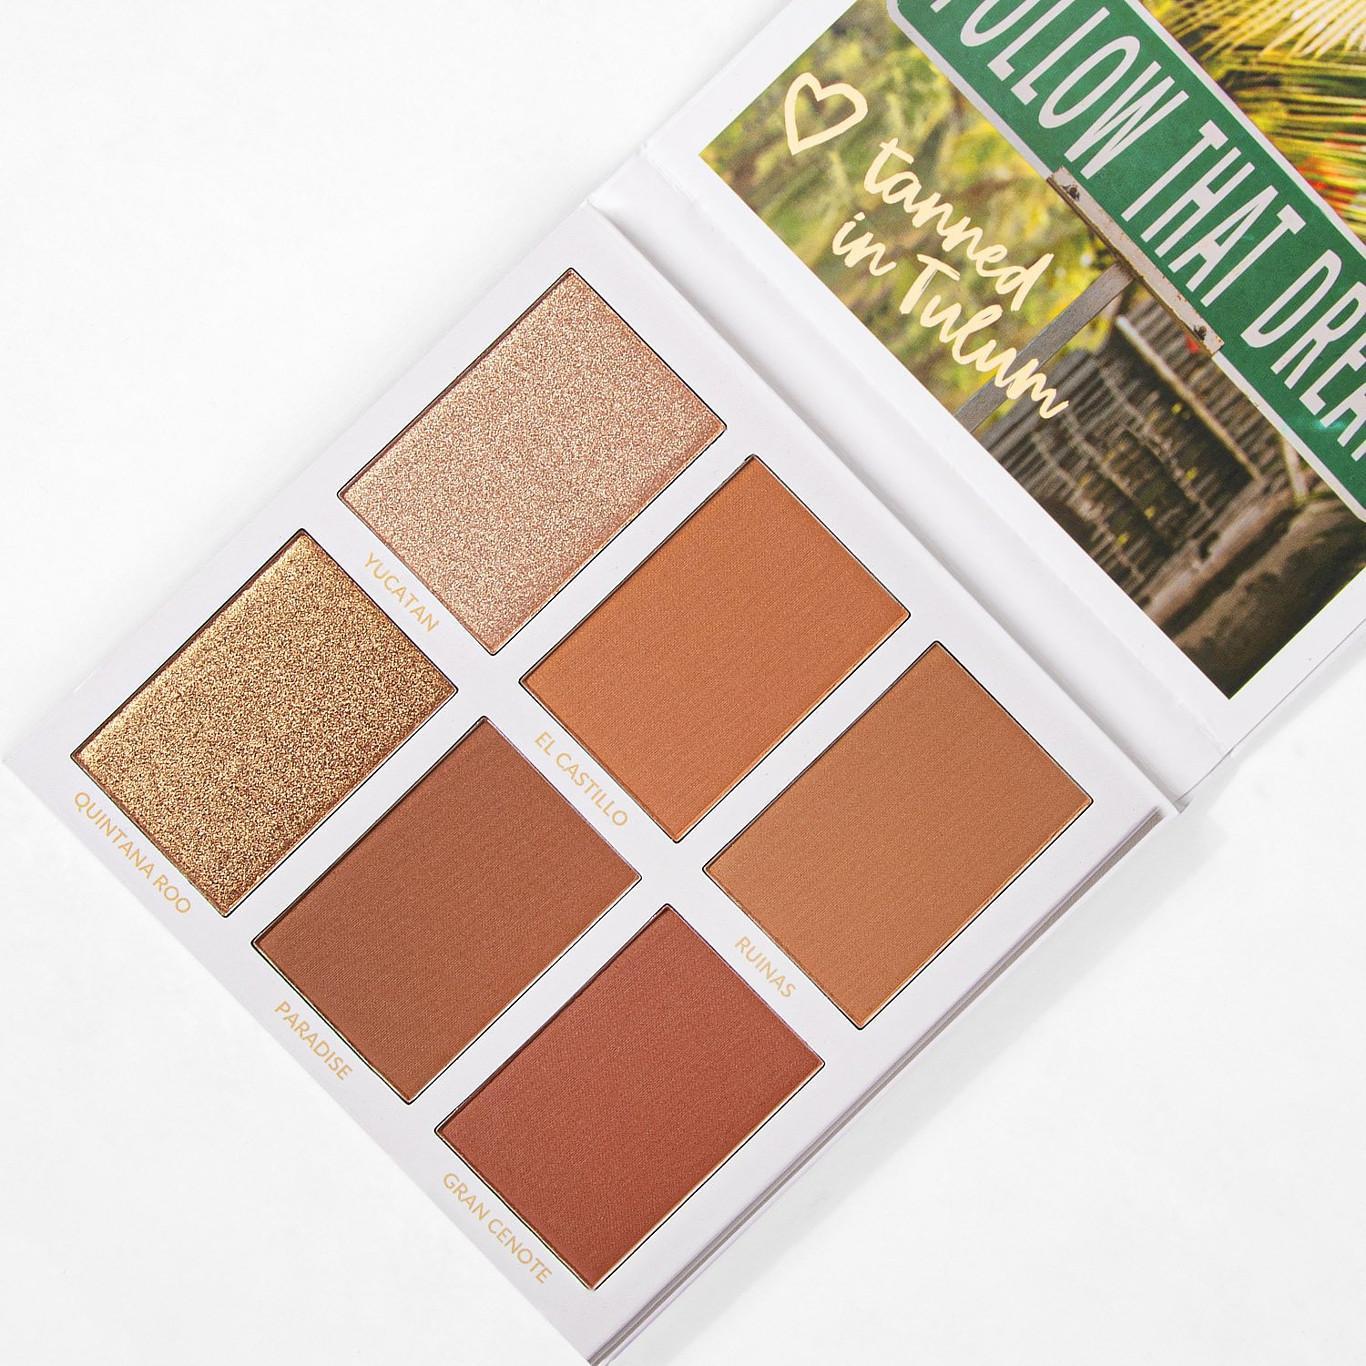 BH Cosmetics Travel Series Tanned In Tulum Open Angled